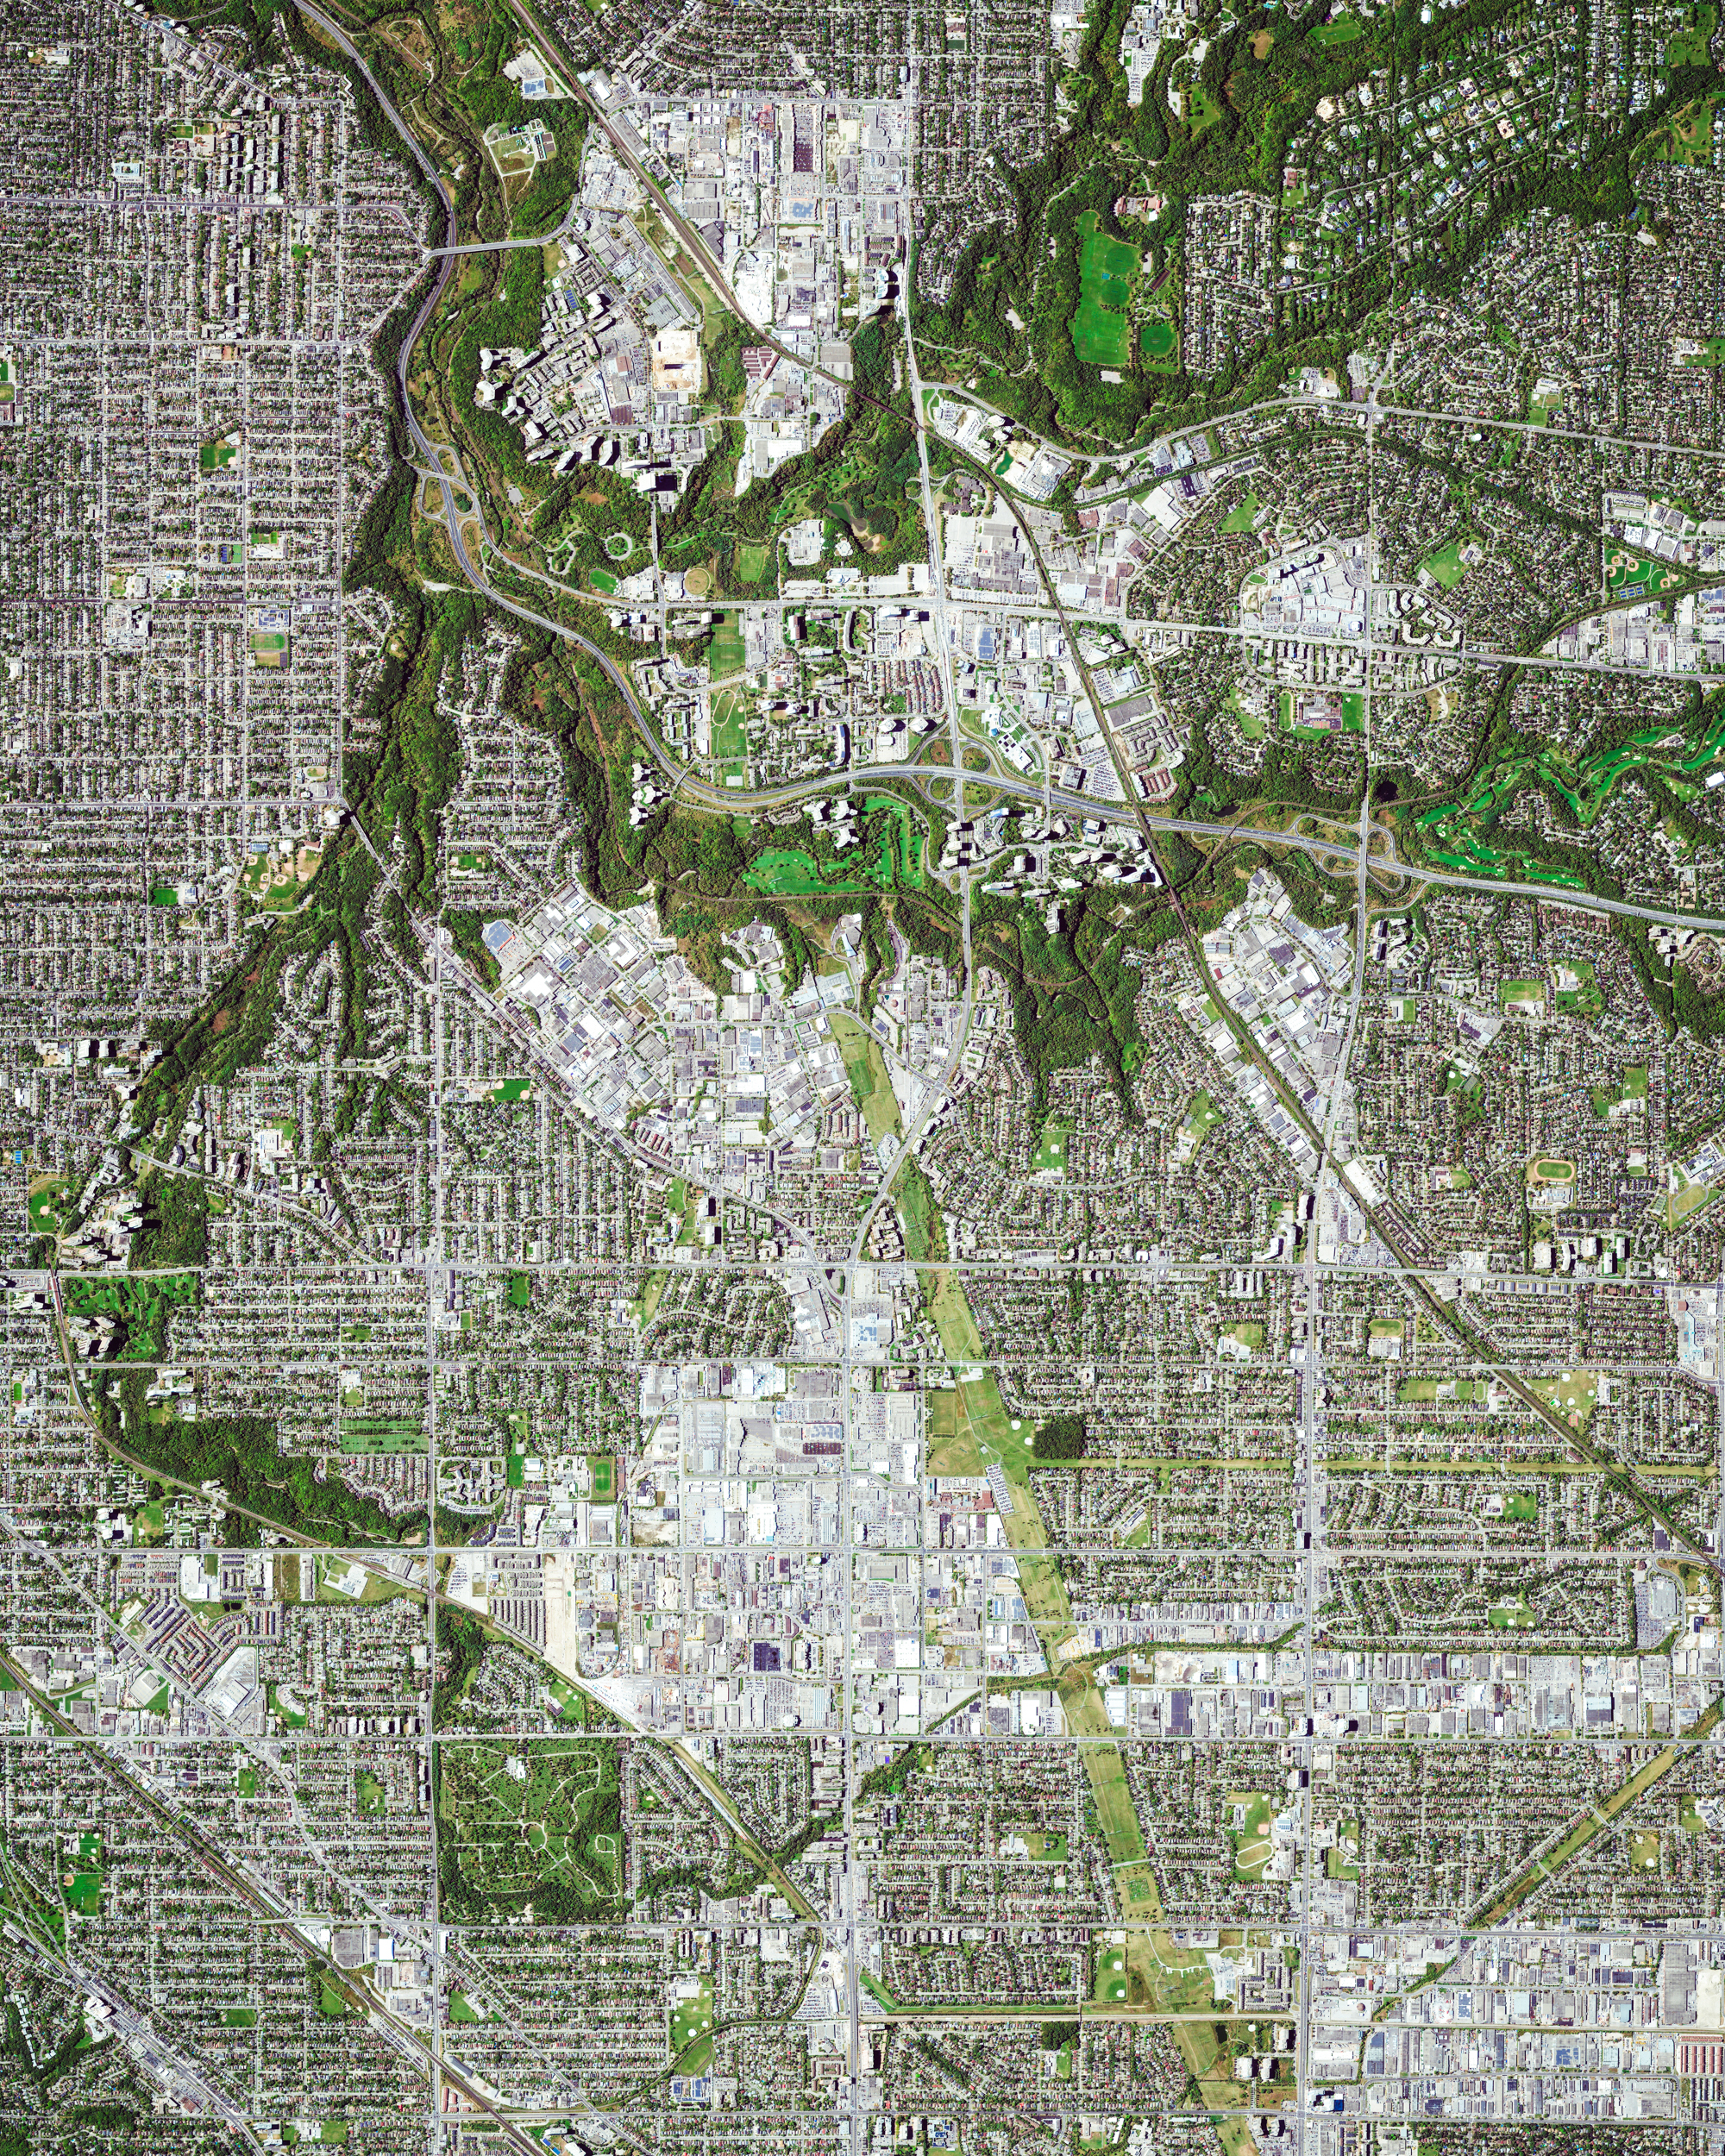 "Toronto is the most populous city in Canada, with upwards of 5.9 million people living in its metropolitan area. It is considered one of the most multicultural and cosmopolitan cities in the world; in fact, more than 50 percent of Toronto's residents belong to a visible minority group and more than 160 languages are spoken in the city. This Overview shows several of Toronto's neighborhoods, including pieces of East York, North York and Scarborough.  43°41'28.7""N, 79°19'40.1""W  Source imagery: DigitalGlobe"